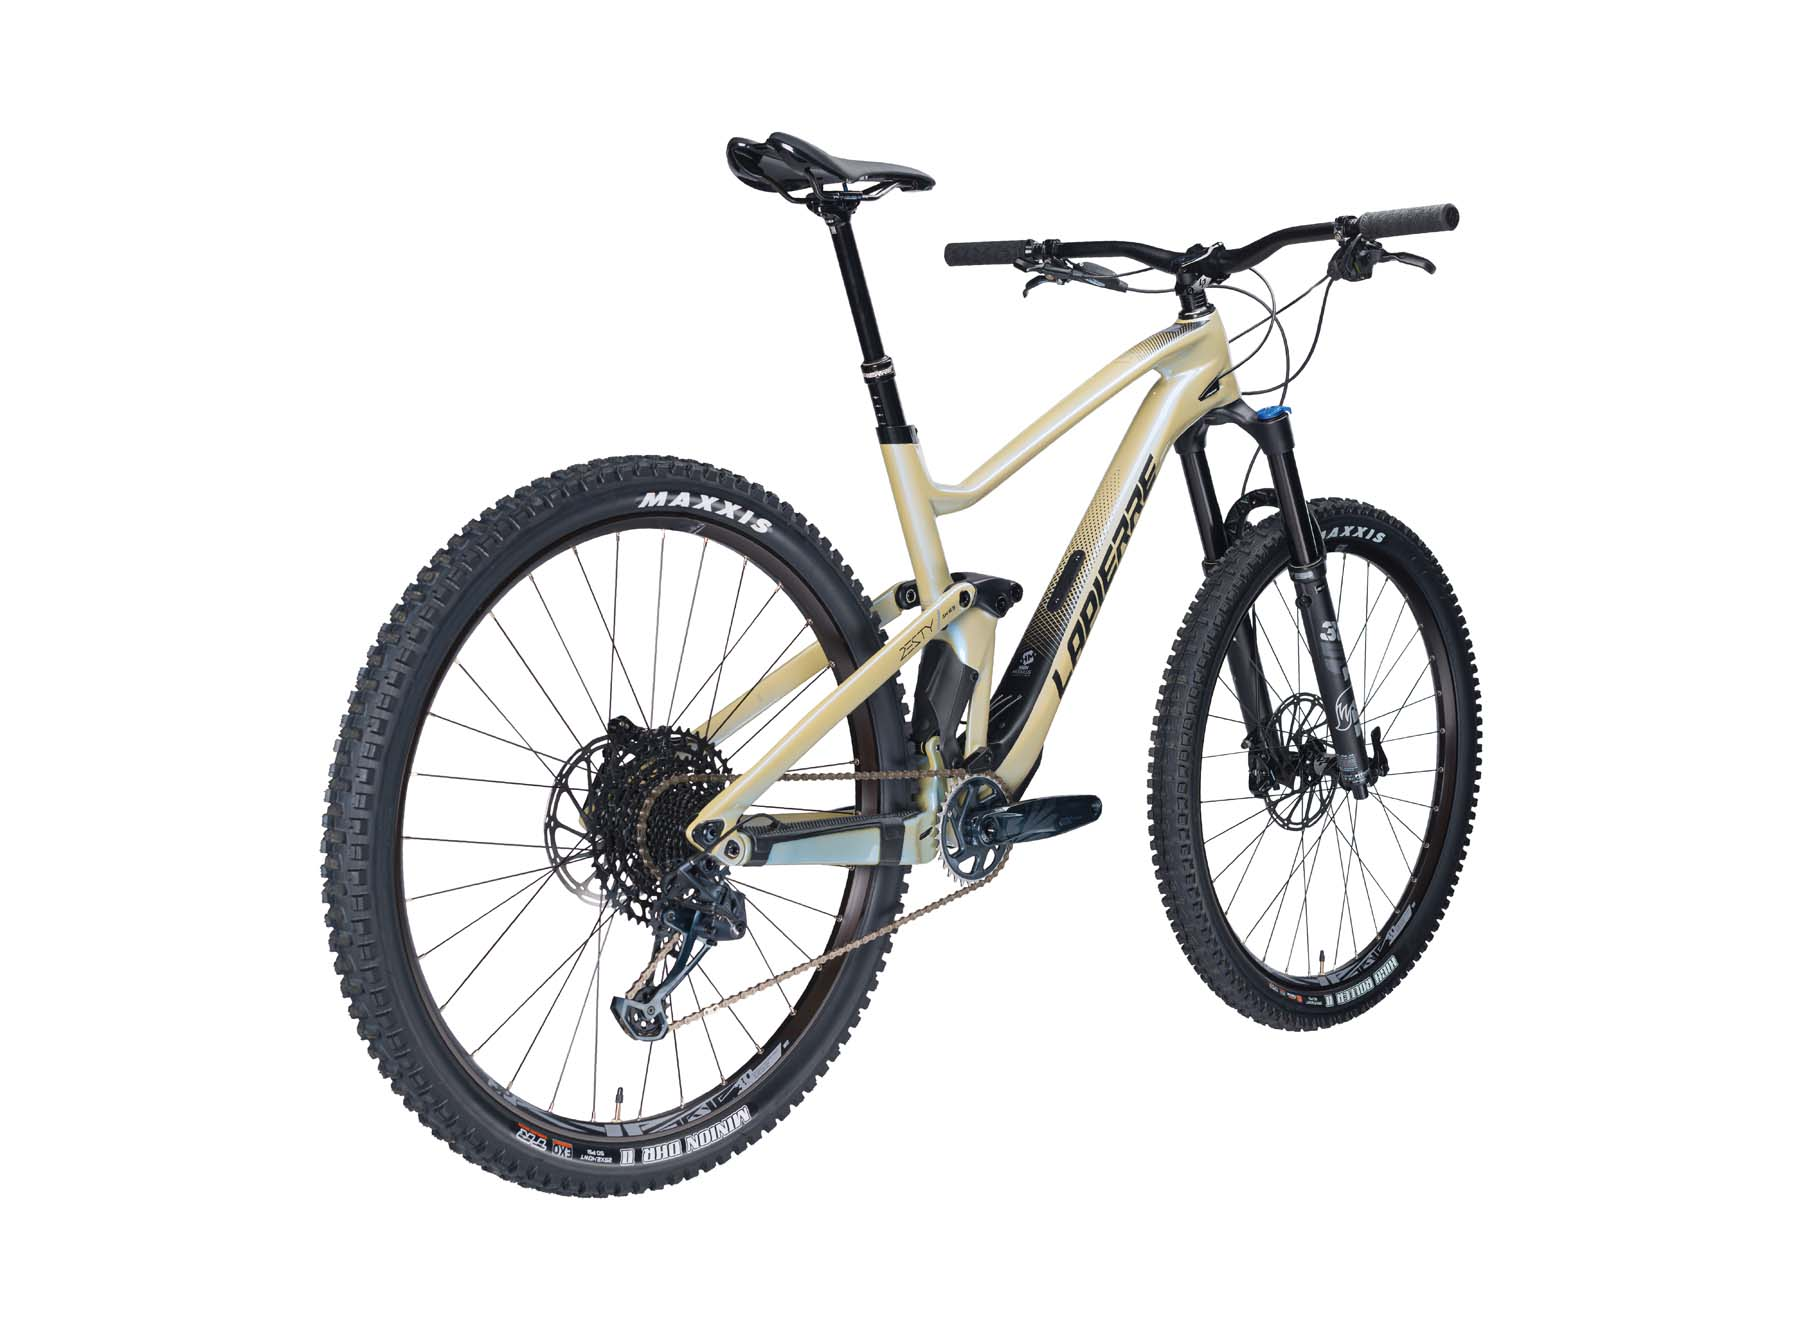 Lapierre Zesty AM CF 6.9 2021 All-Mountain Bike 2